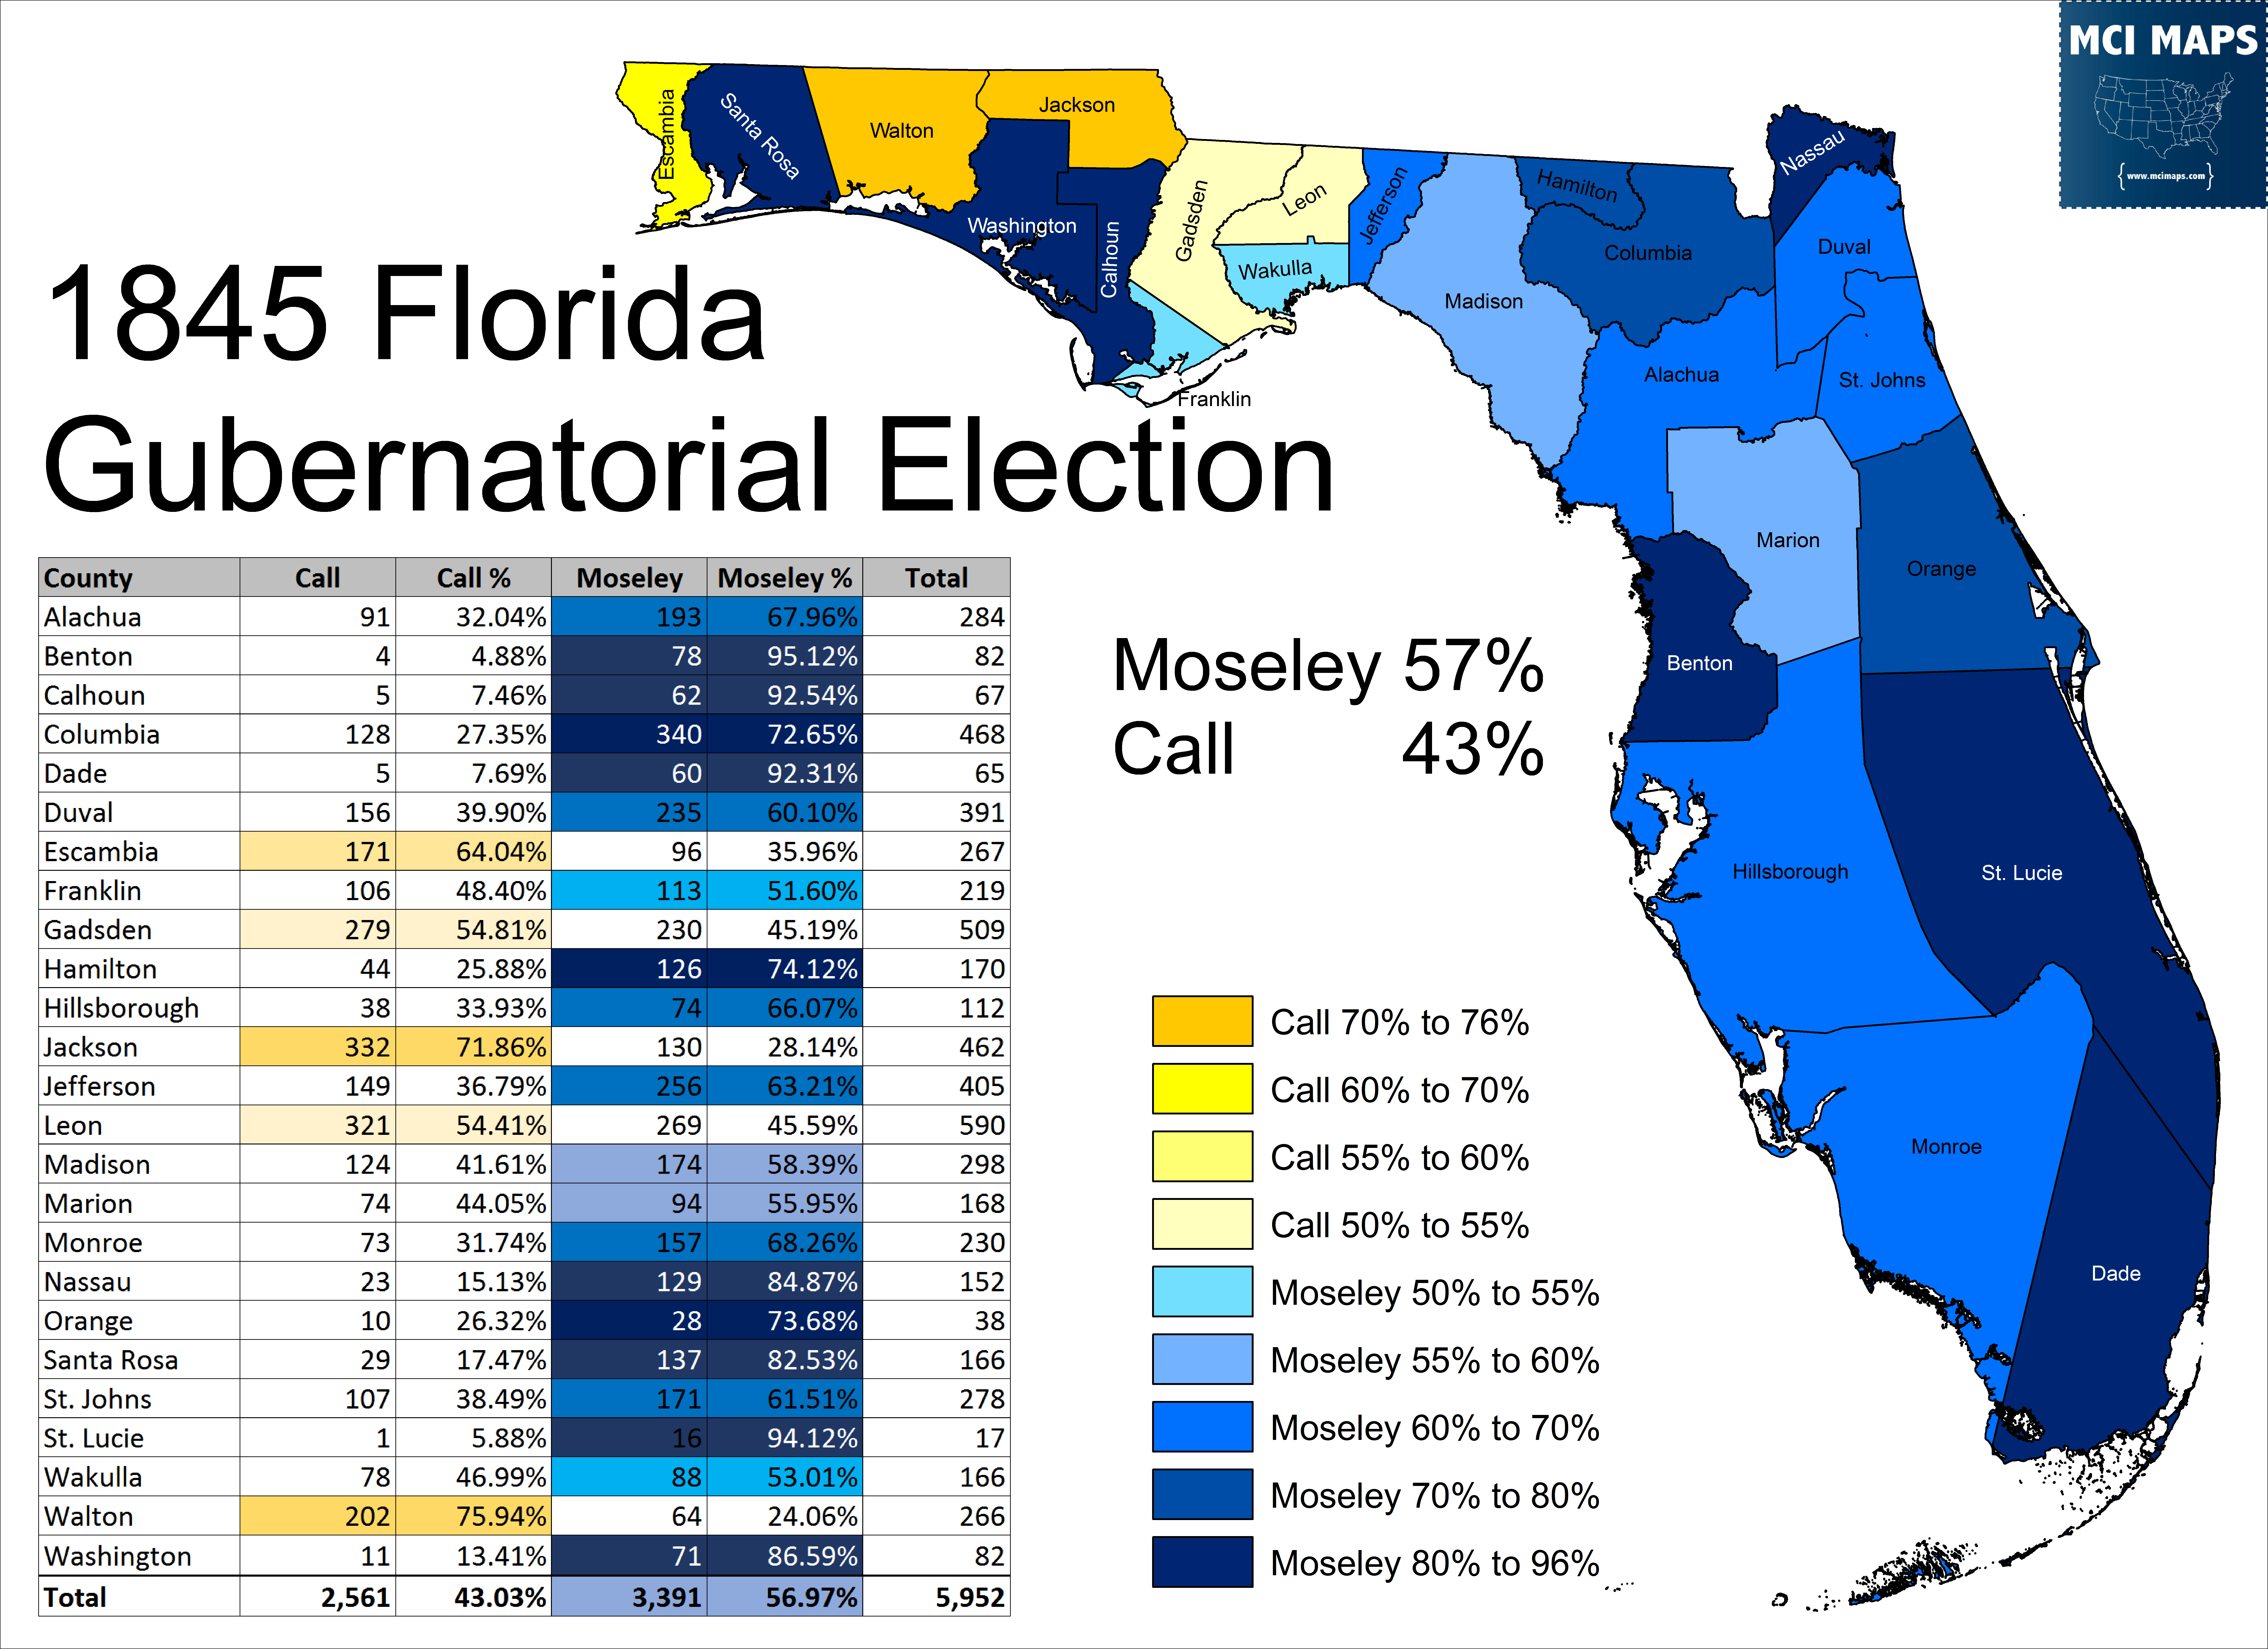 Florida MCI Maps - Governors in us by state map party affiliation